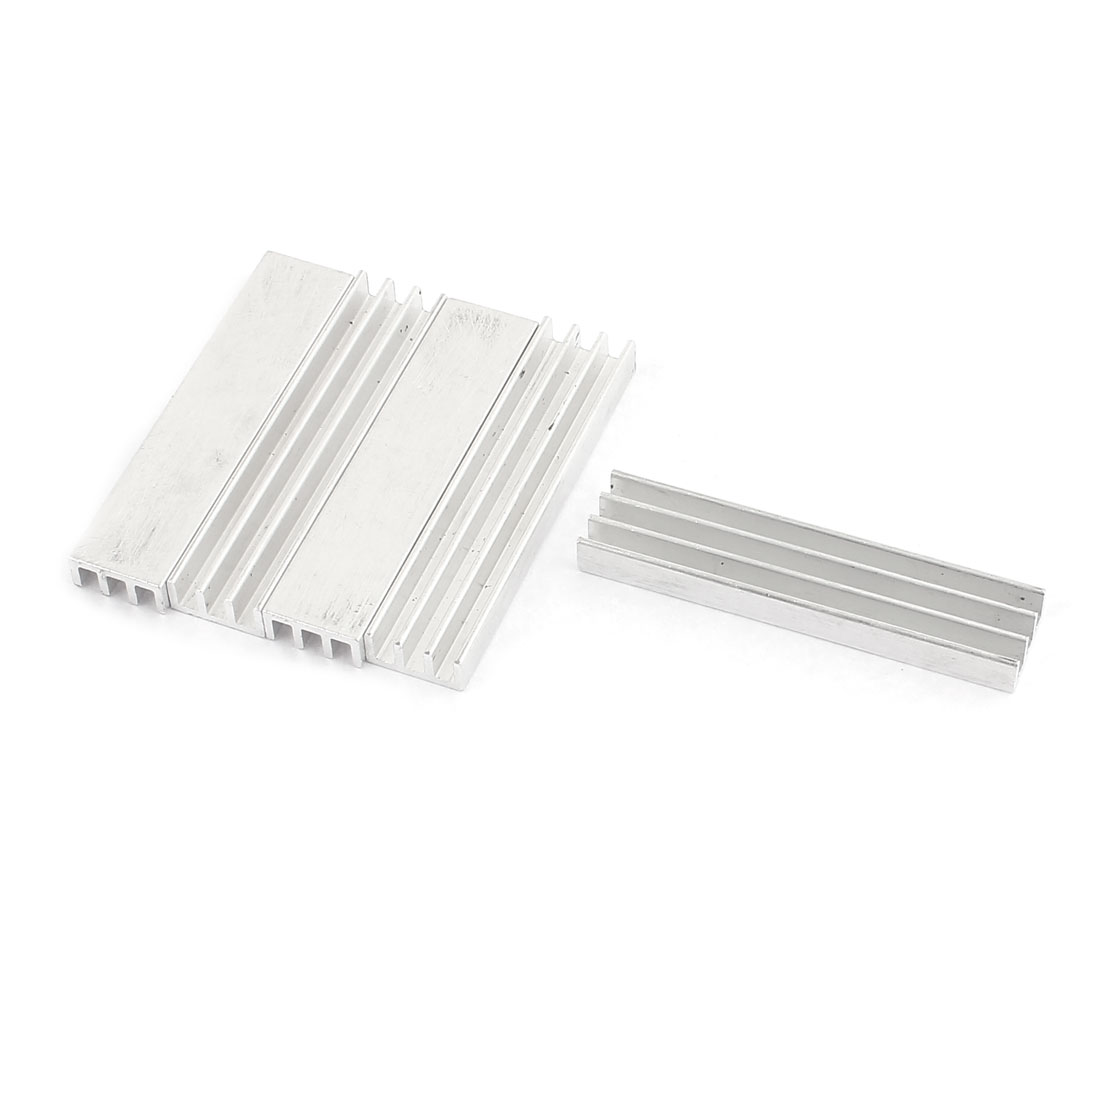 5 Pcs Aluminium 49 x 11 x 5mm Heat Sink Radiator Cooling Fin Silver Tone for CPU